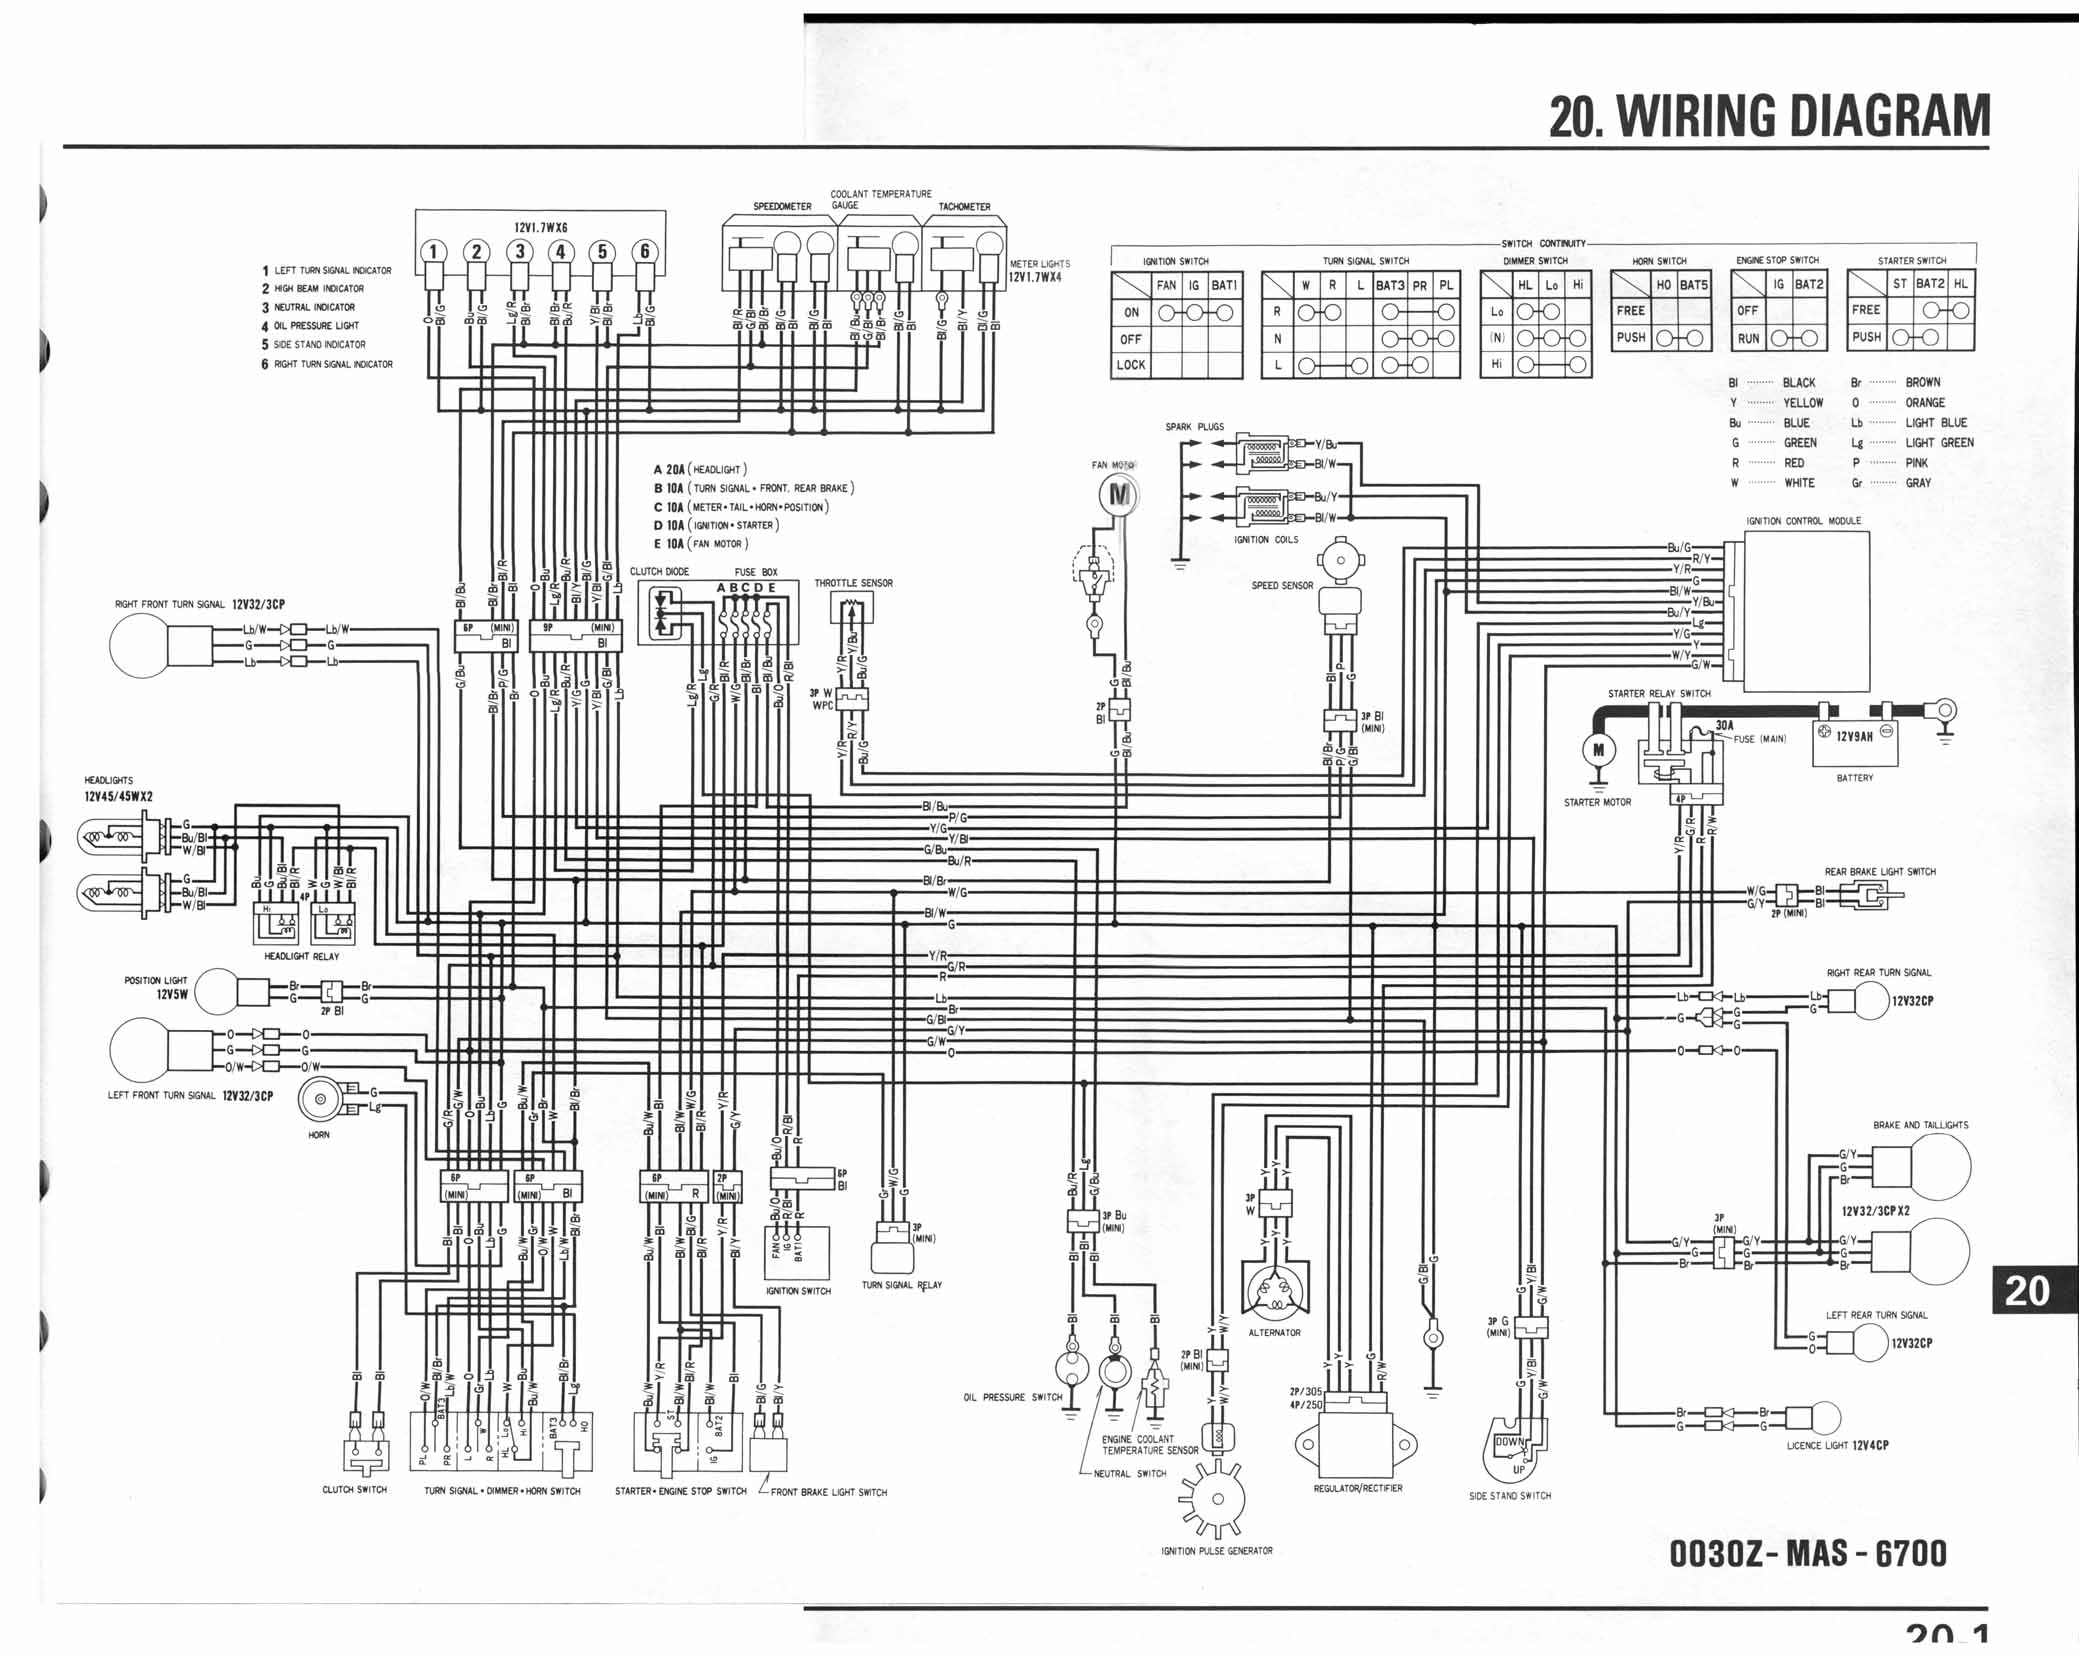 Cb400f Wiring Diagram | Wiring Diagrams on